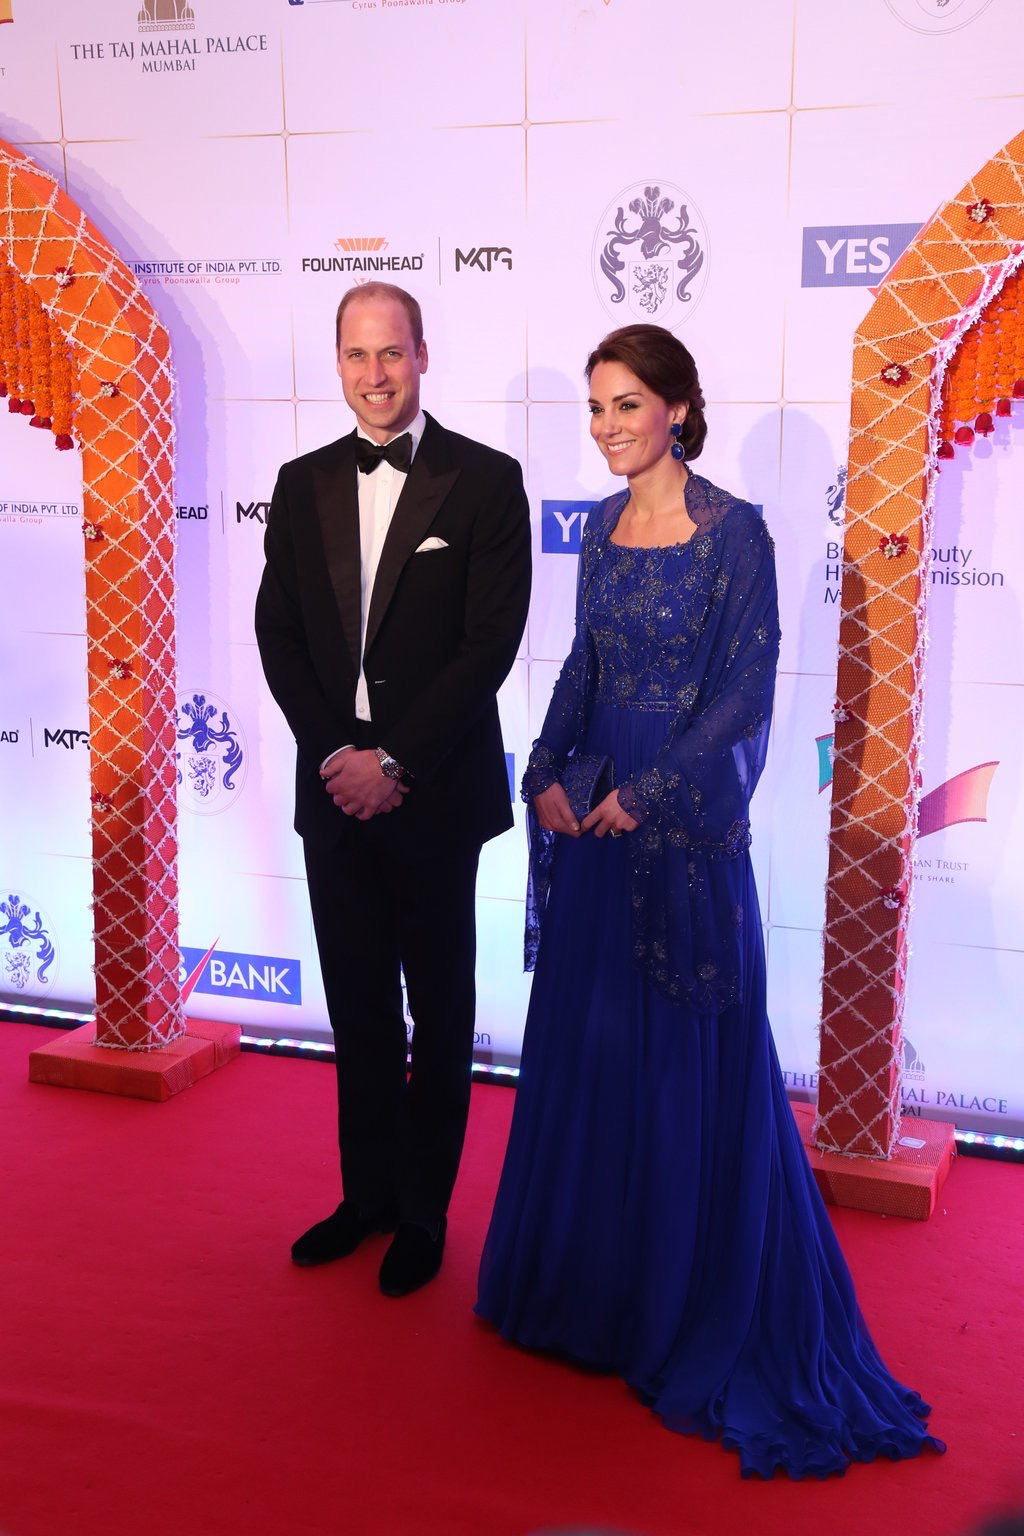 The Charity Gala Reception For Kate & William By Fountainhead MKTG